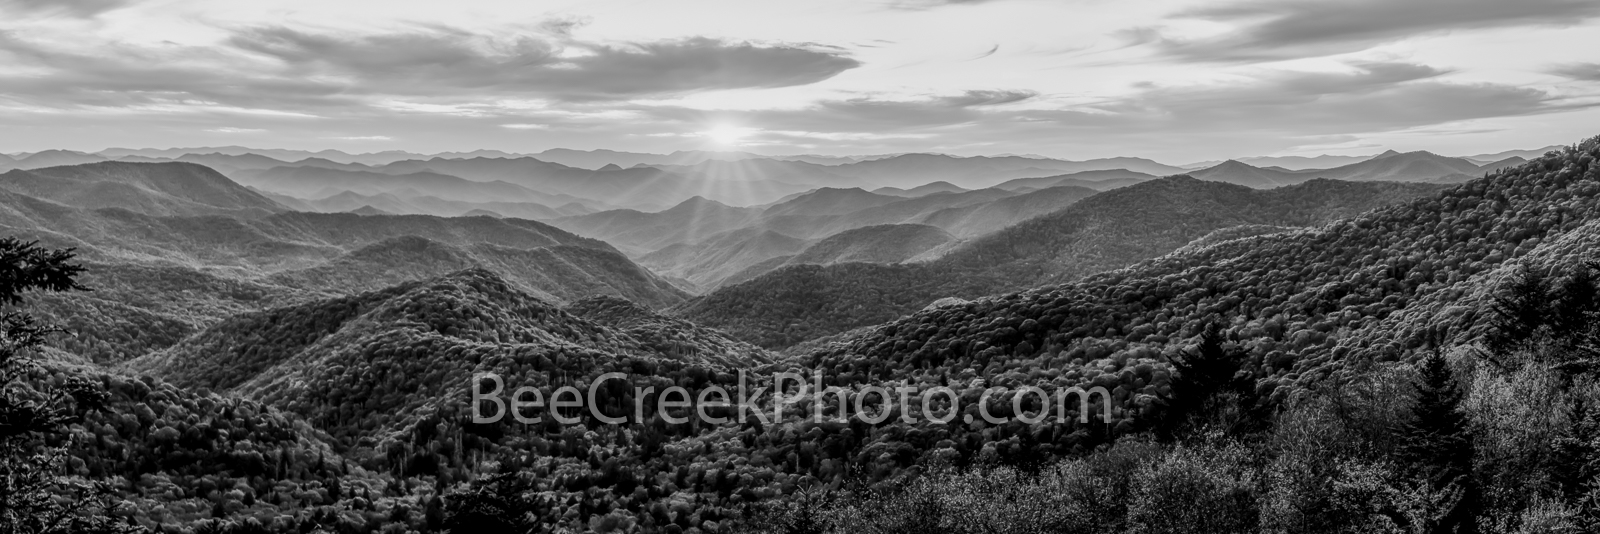 Great Smoky Mountains Sunset Pano BW - Great Smoky Mountains Sunset Landscape Cherokee North Carolina in black and white. After...